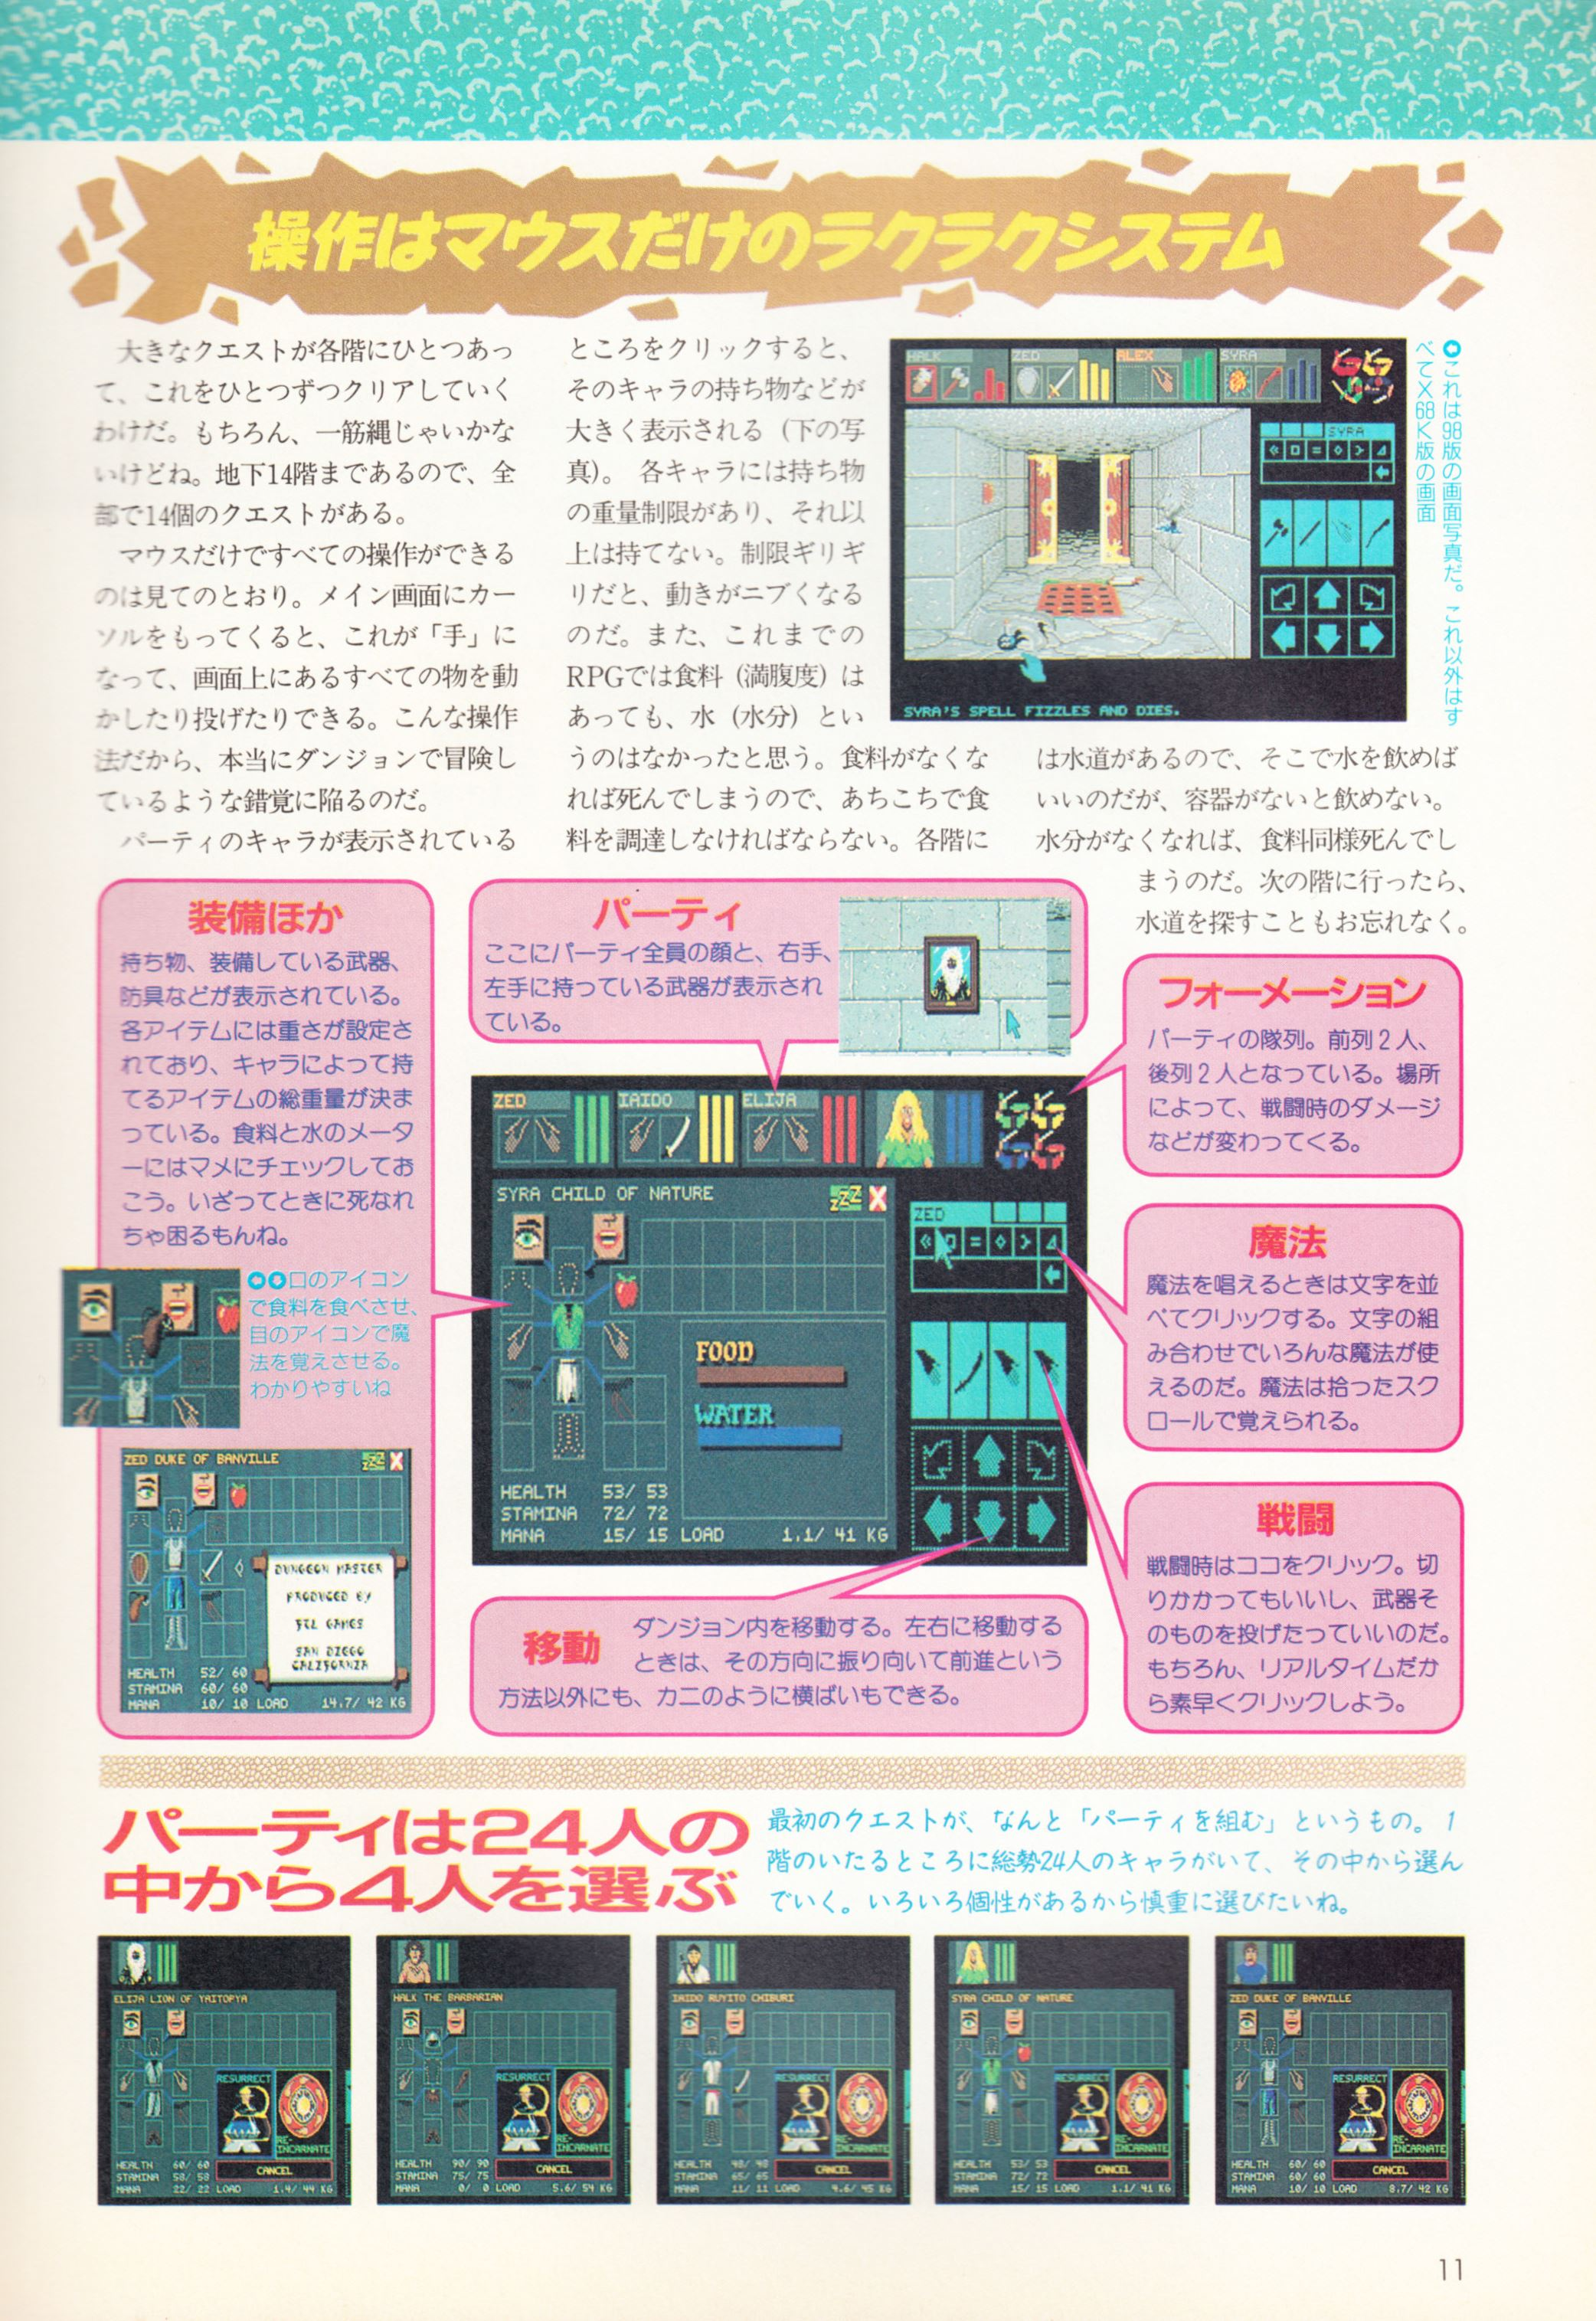 Dungeon Master Review published in Japanese magazine 'Technopolis', Vol 9 No 1 01 January 1990, Page 11